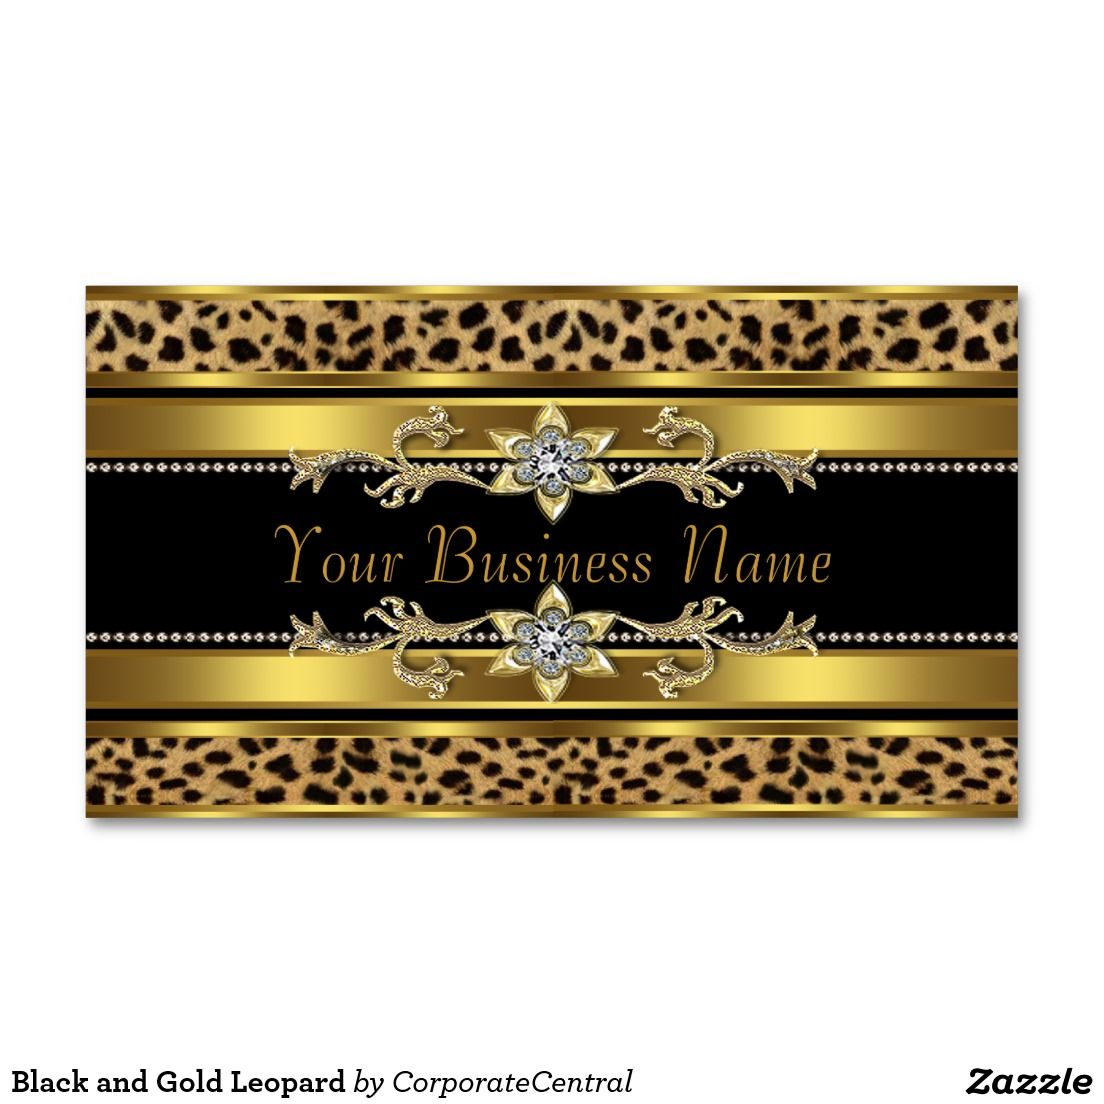 Black and Gold Leopard Business Card | Business cards, Business and ...